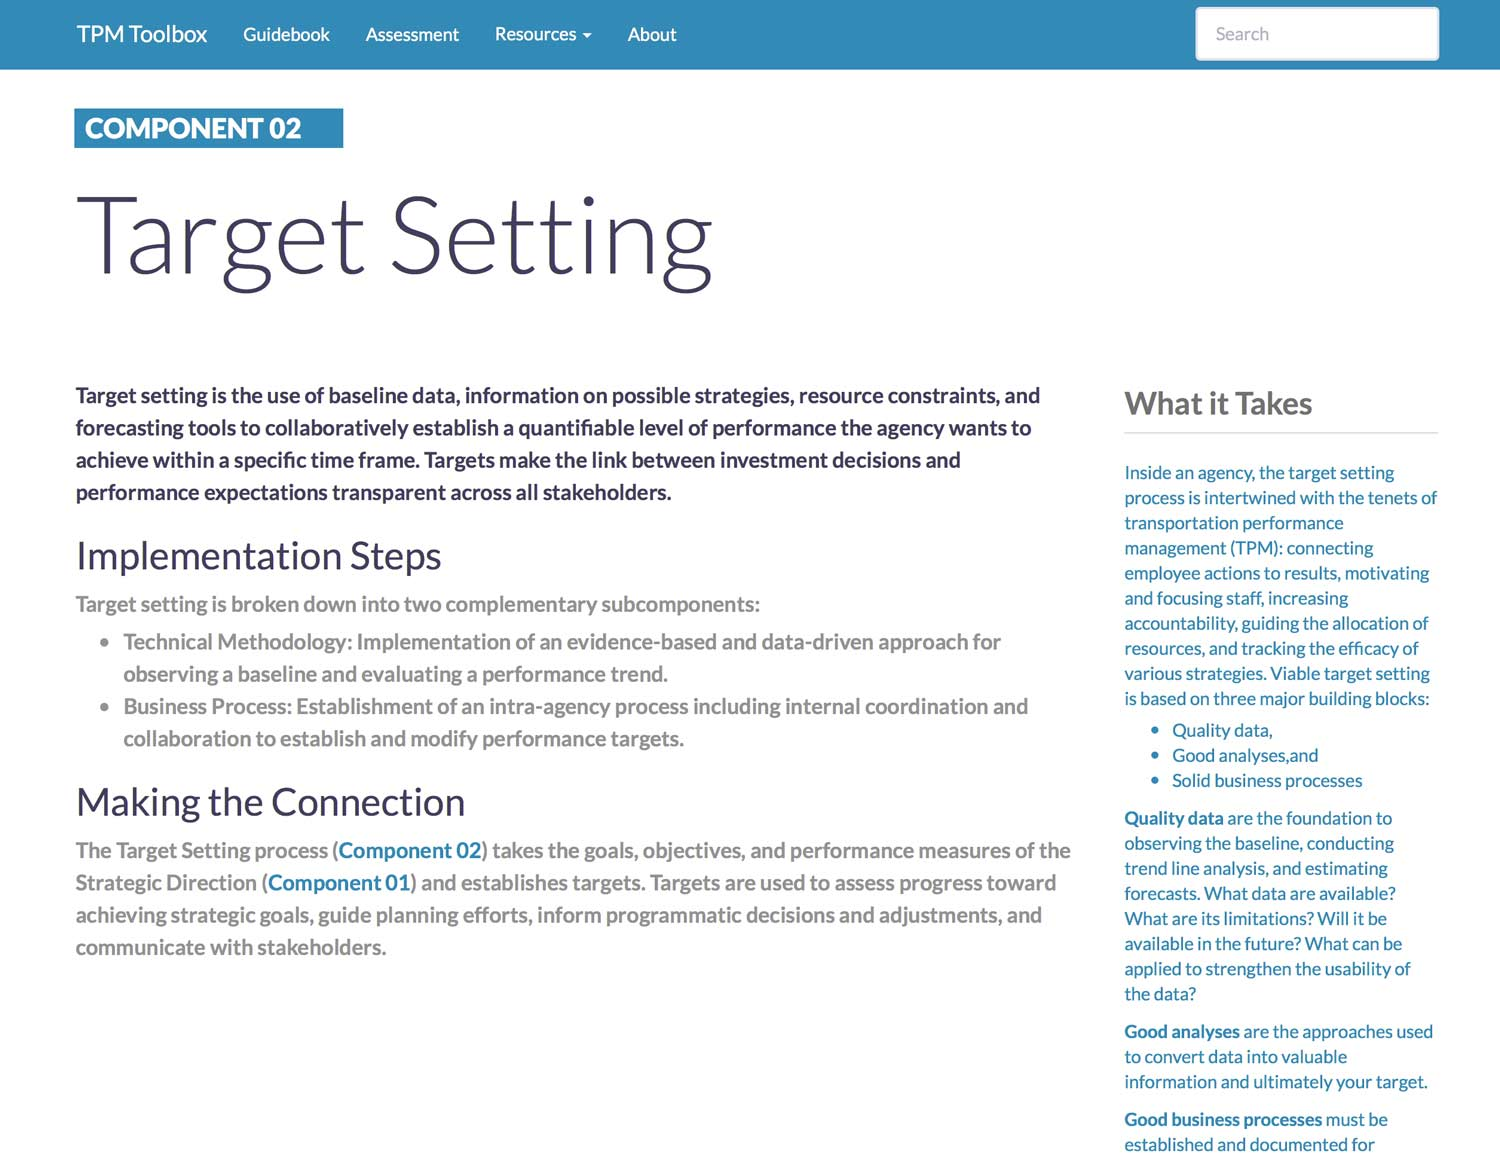 Thumbnail image of Component 02 Summary webpage. Target setting is the use of baseline data, information on possible strategies, resource constraints, and forecasting tools to collaboratively establish a quantifiable level of performance the agency wants to achieve within a specific time frame.